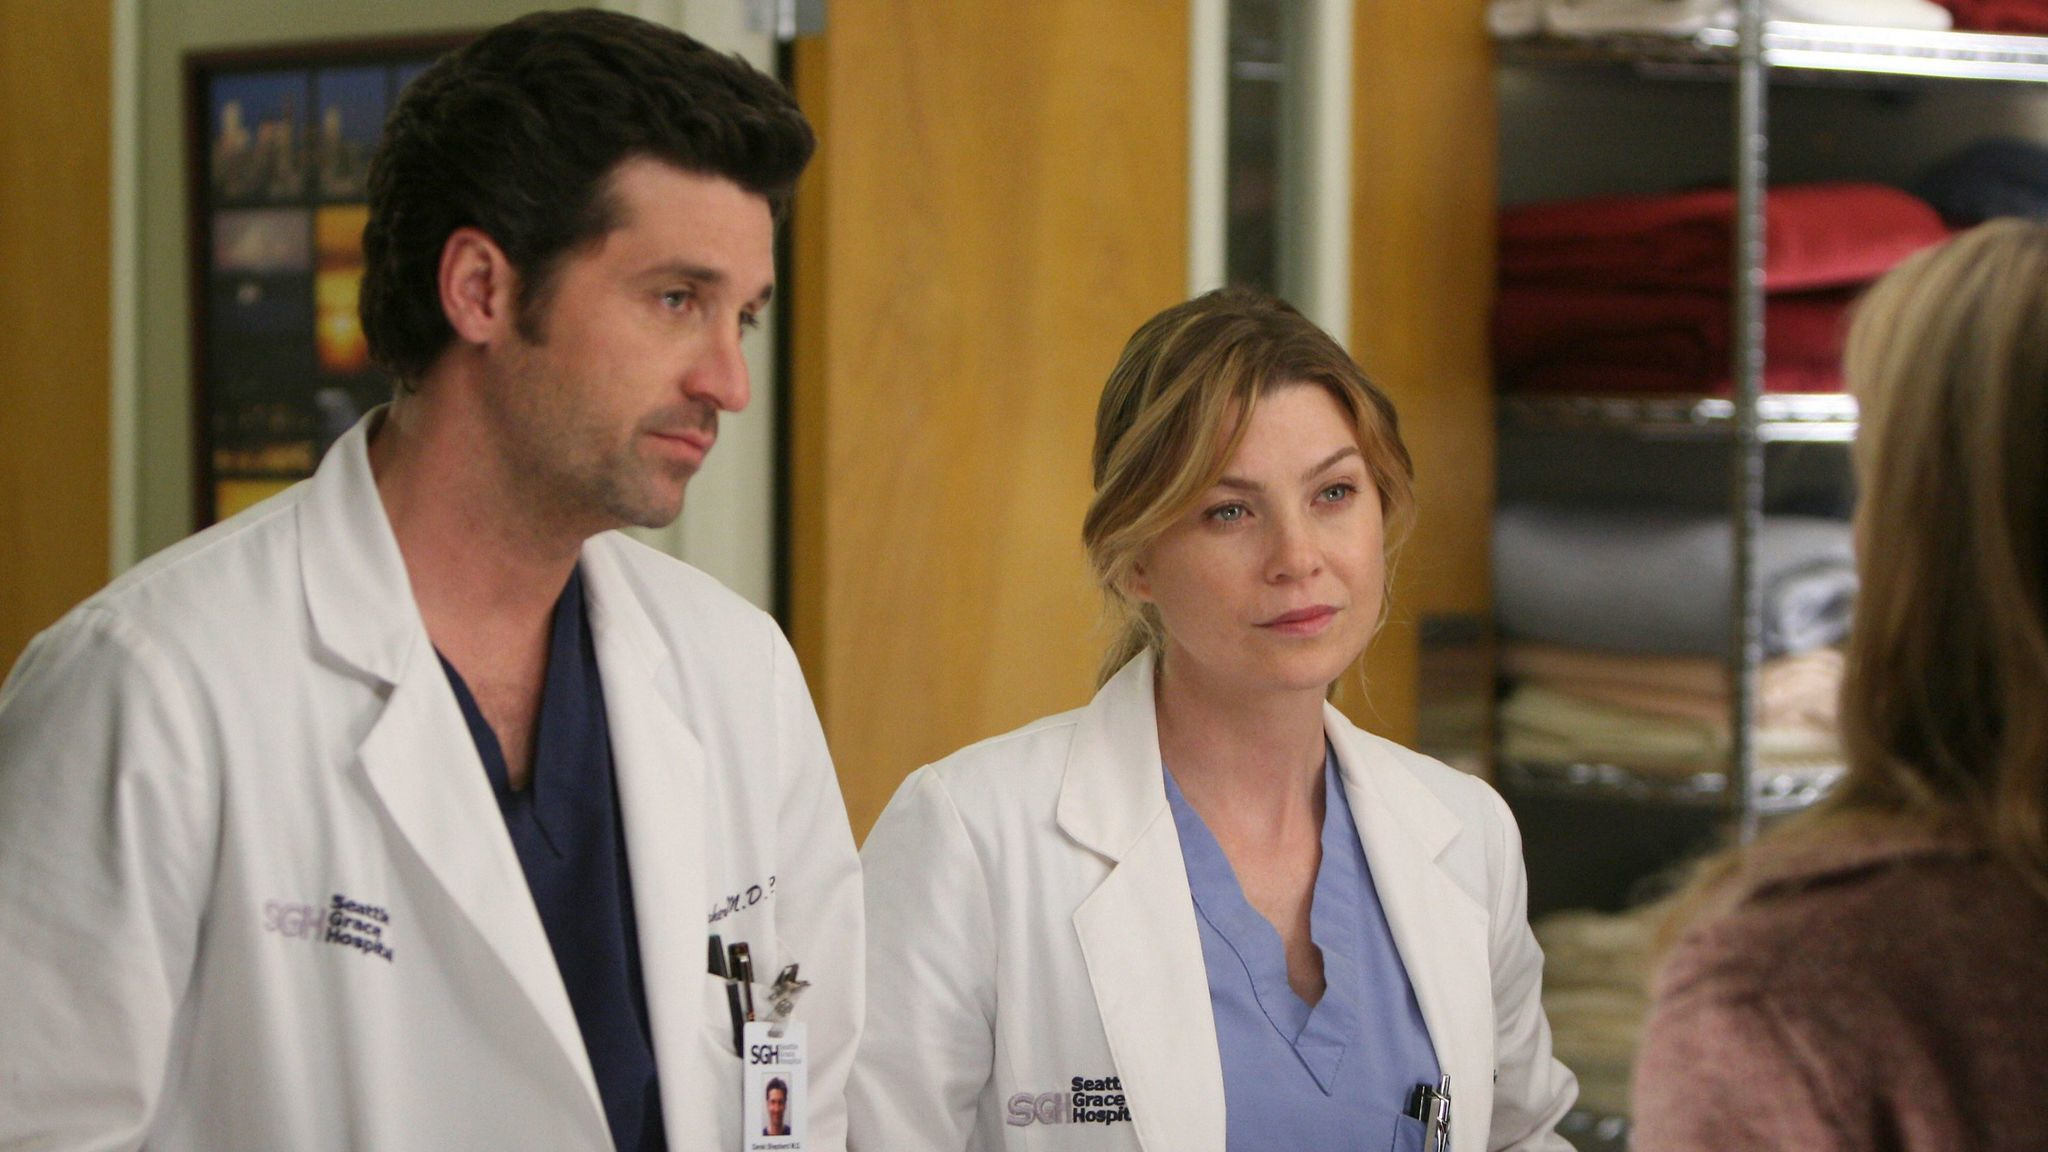 Patrick Dempsey and Ellen Pompeo in